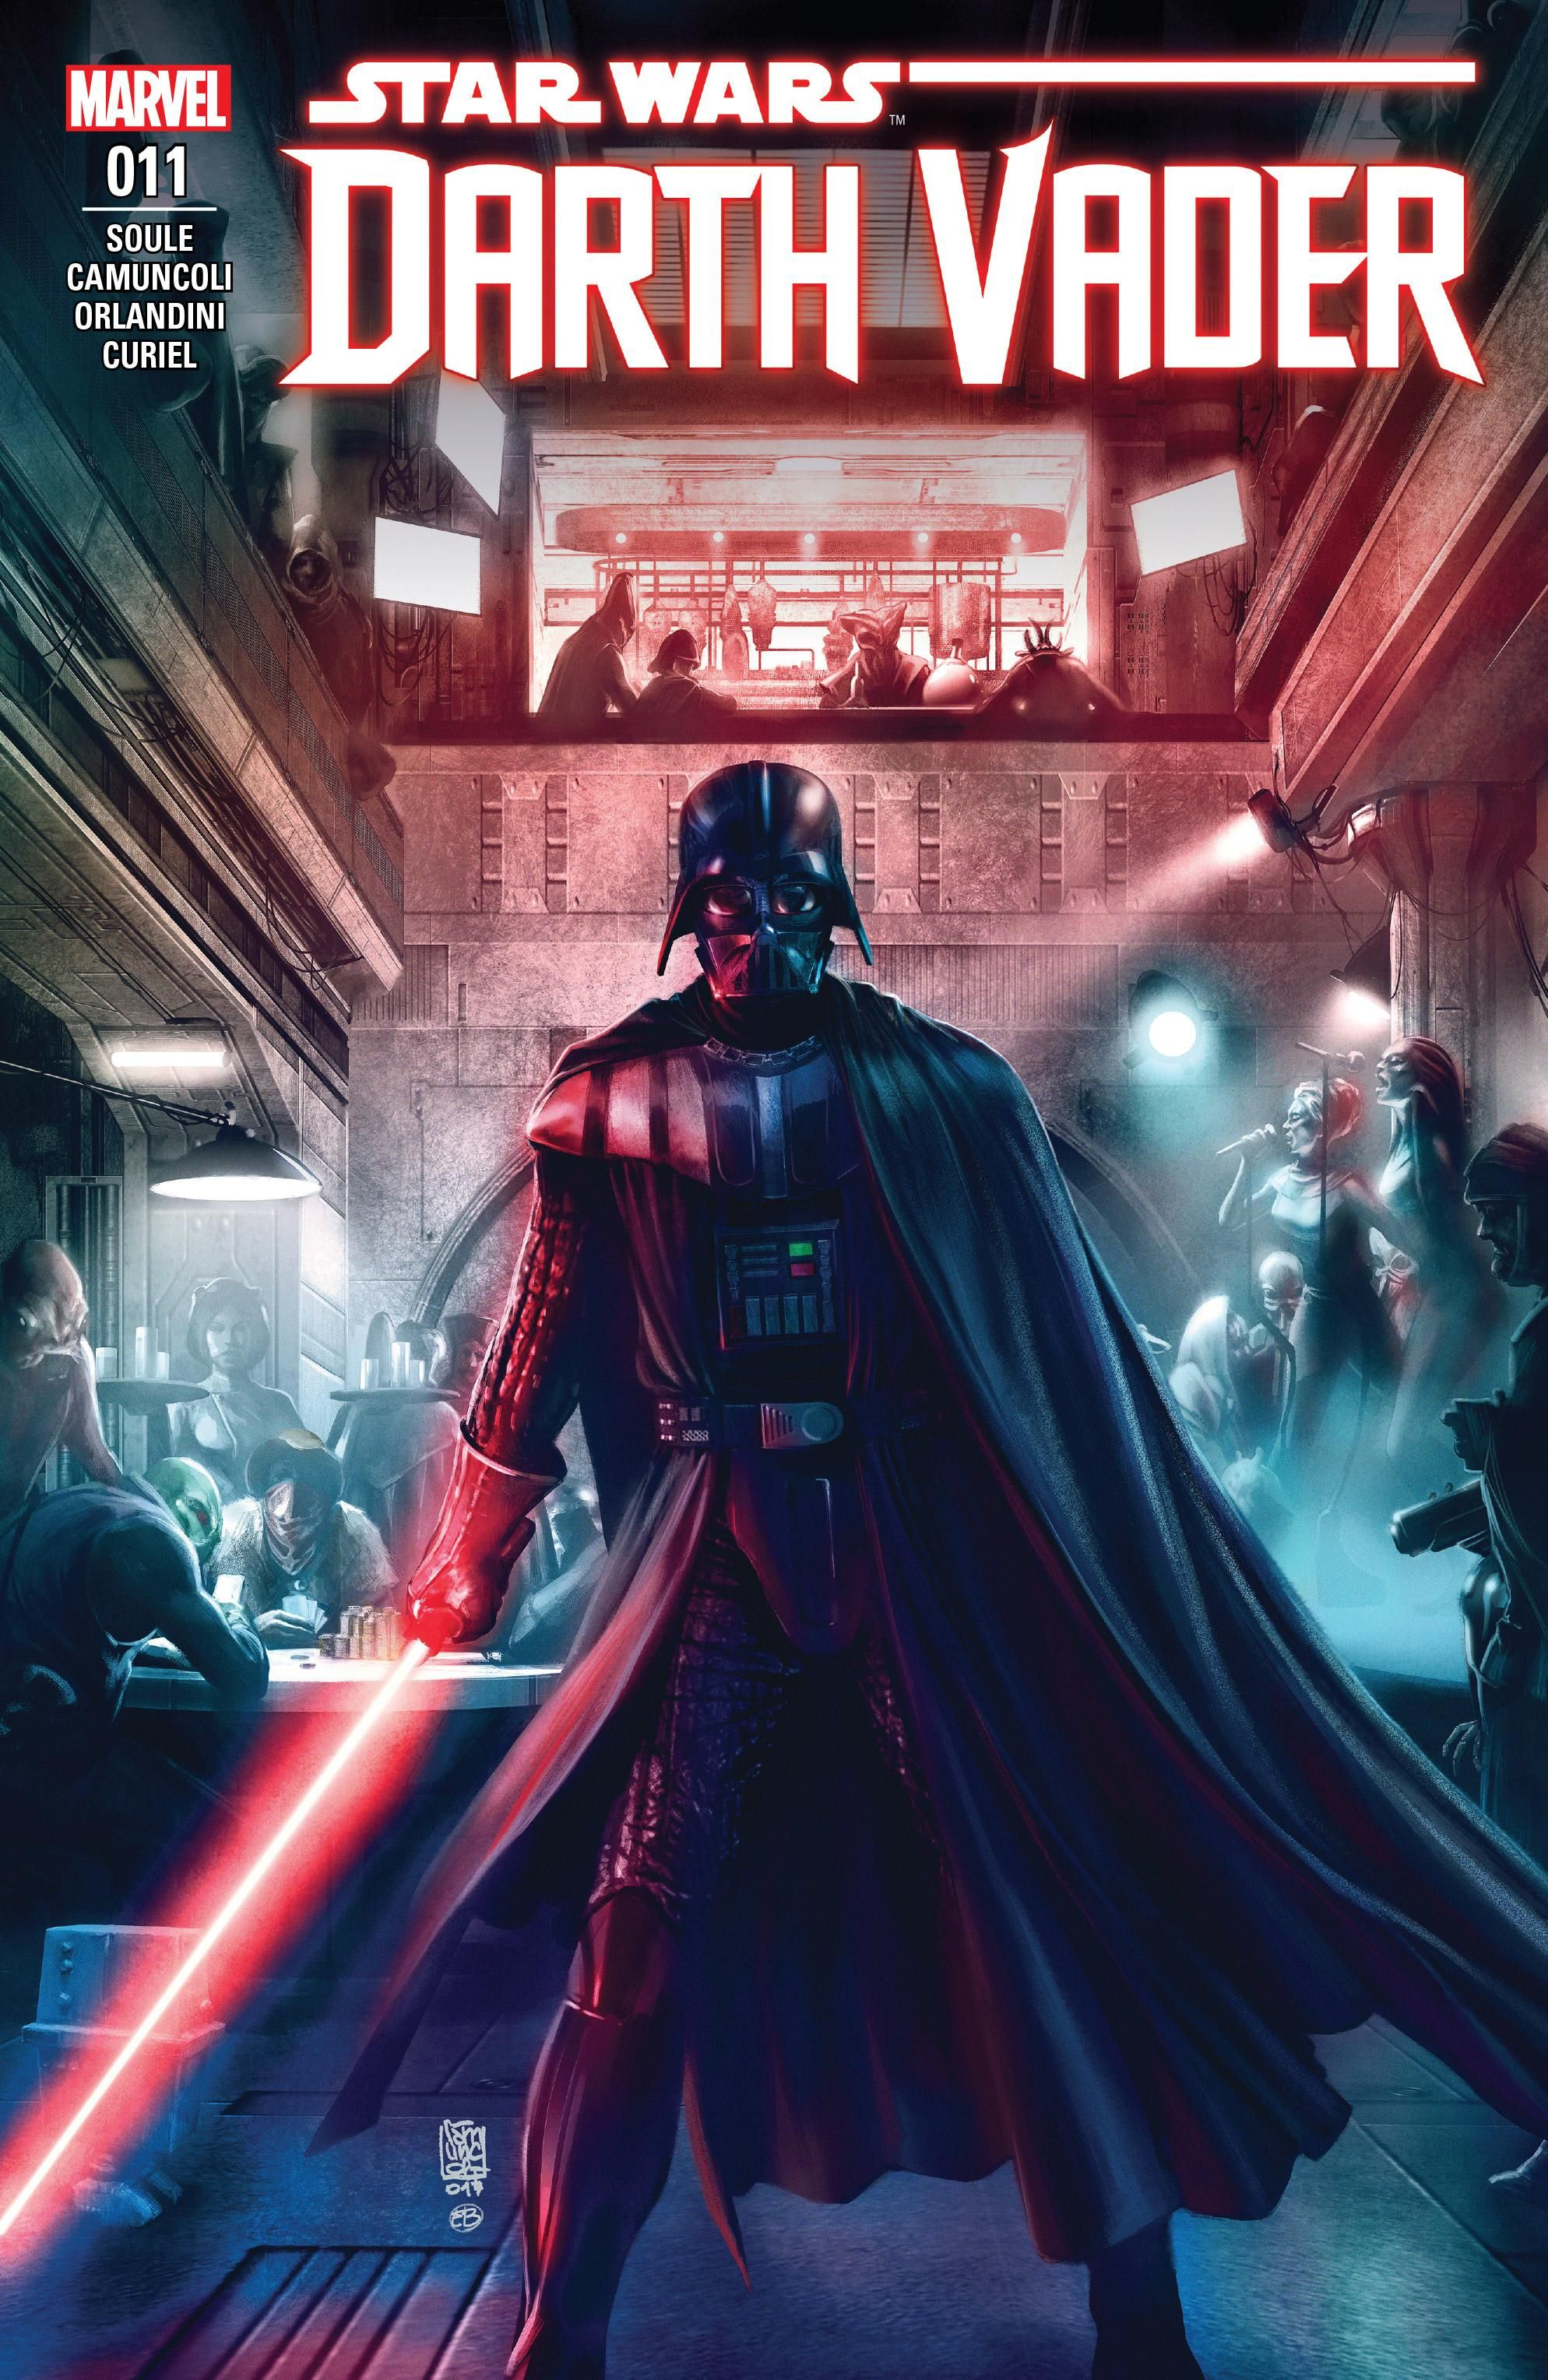 Darth Vader Dark Lord Of The Sith 11 Star Wars Star Wars Fan Art Star Wars Sith